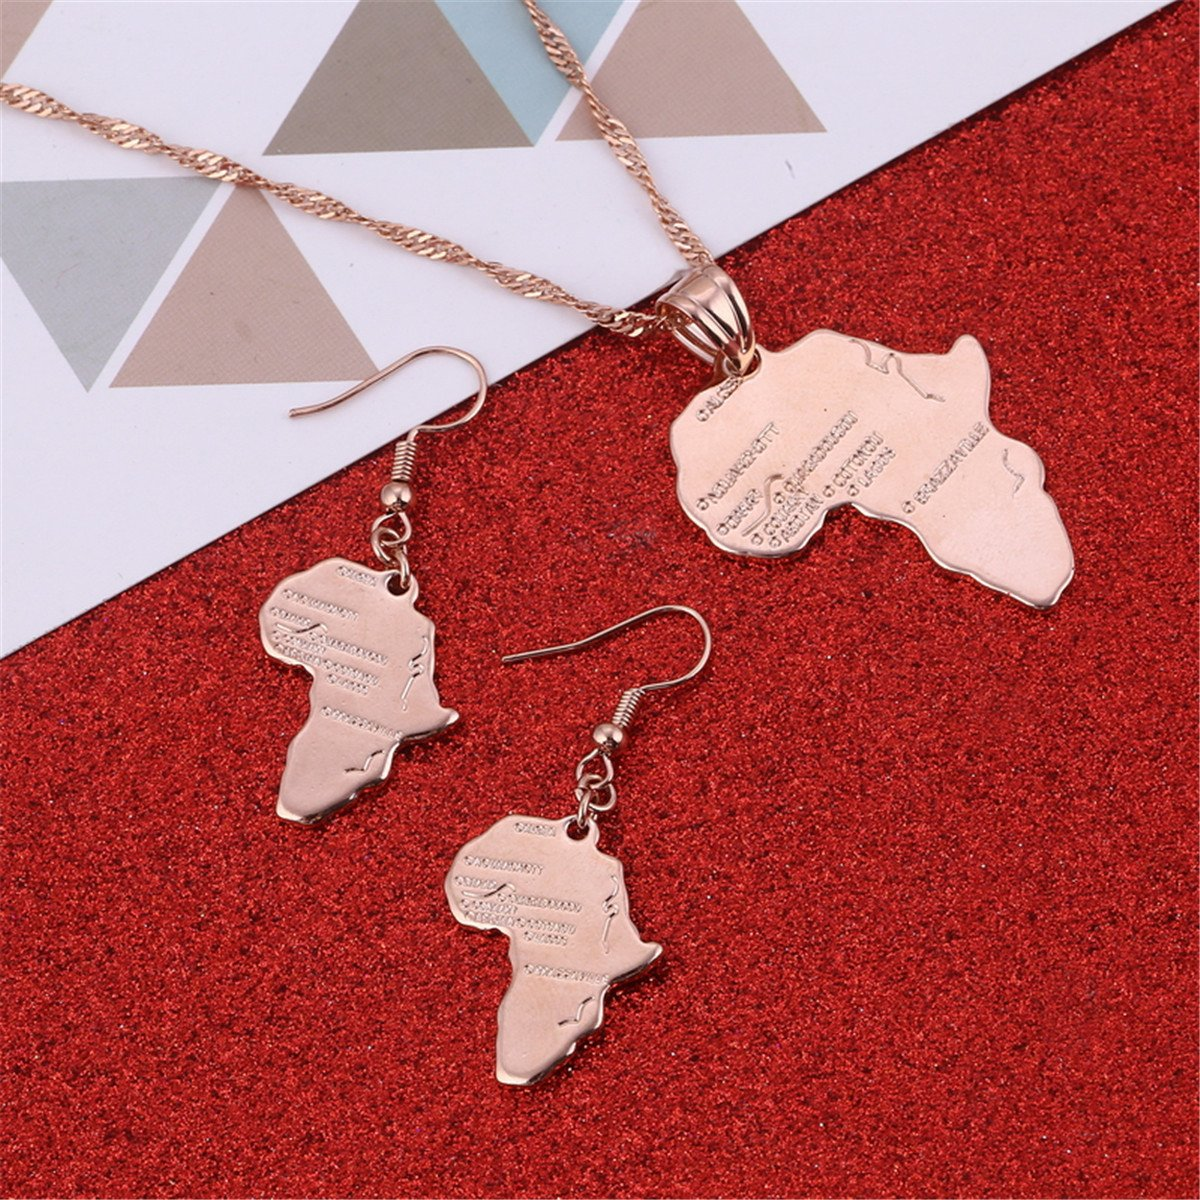 0f8b5138c98 Jewelry Ltd P-00032 BR Gold Jewelry Big Size Crystal Africa Map Pendant Necklace  Women Girl ...